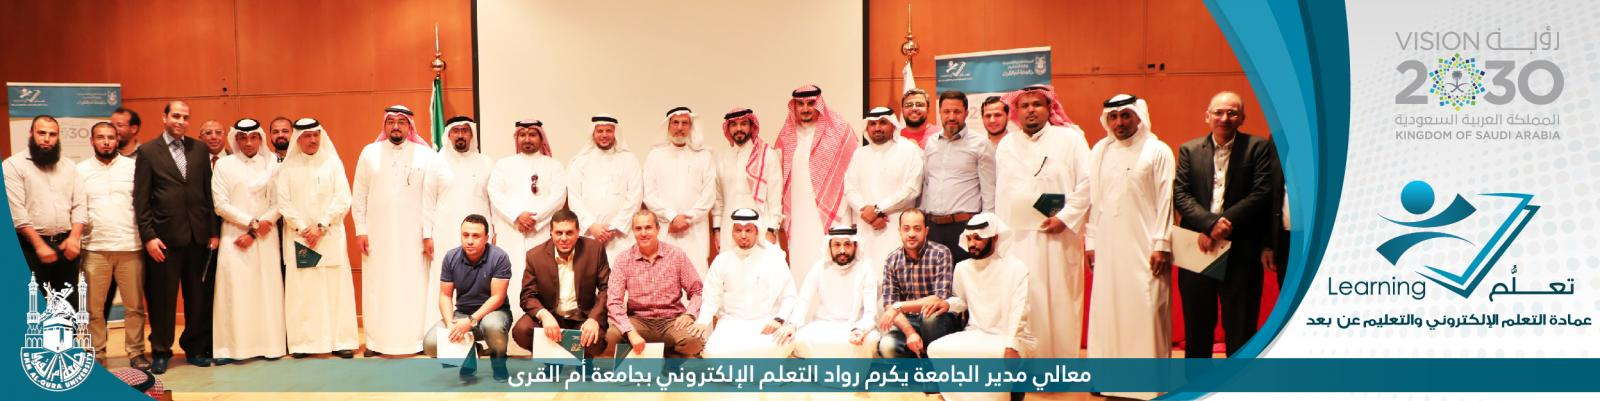 His Excellency the UQU President Honors the E-Learning Pioneers